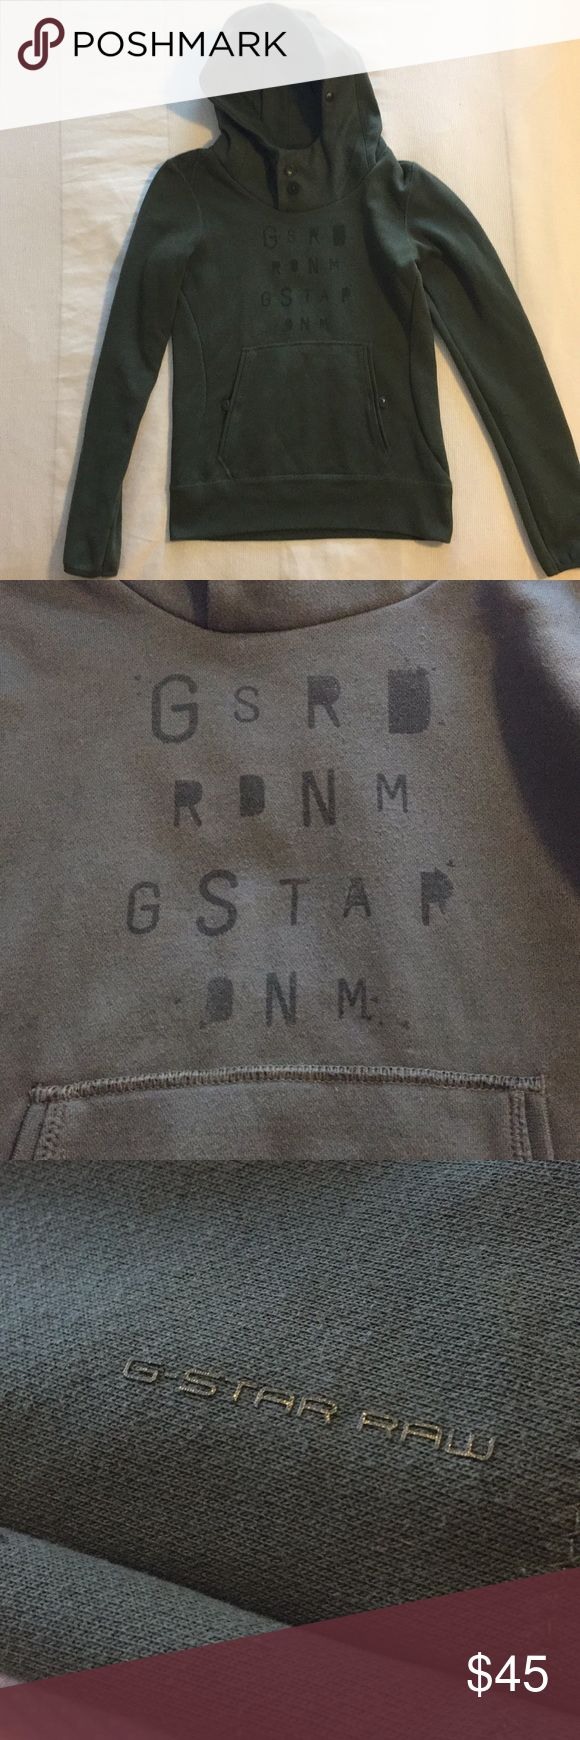 G-Star Raw Hoodie Popular brand G-Star Hoodie in green. Very comfortable. Very gently used. In great condition! Great with your denim look or even with leggings and boots when it's chilly outside. G-Star Tops Sweatshirts & Hoodies